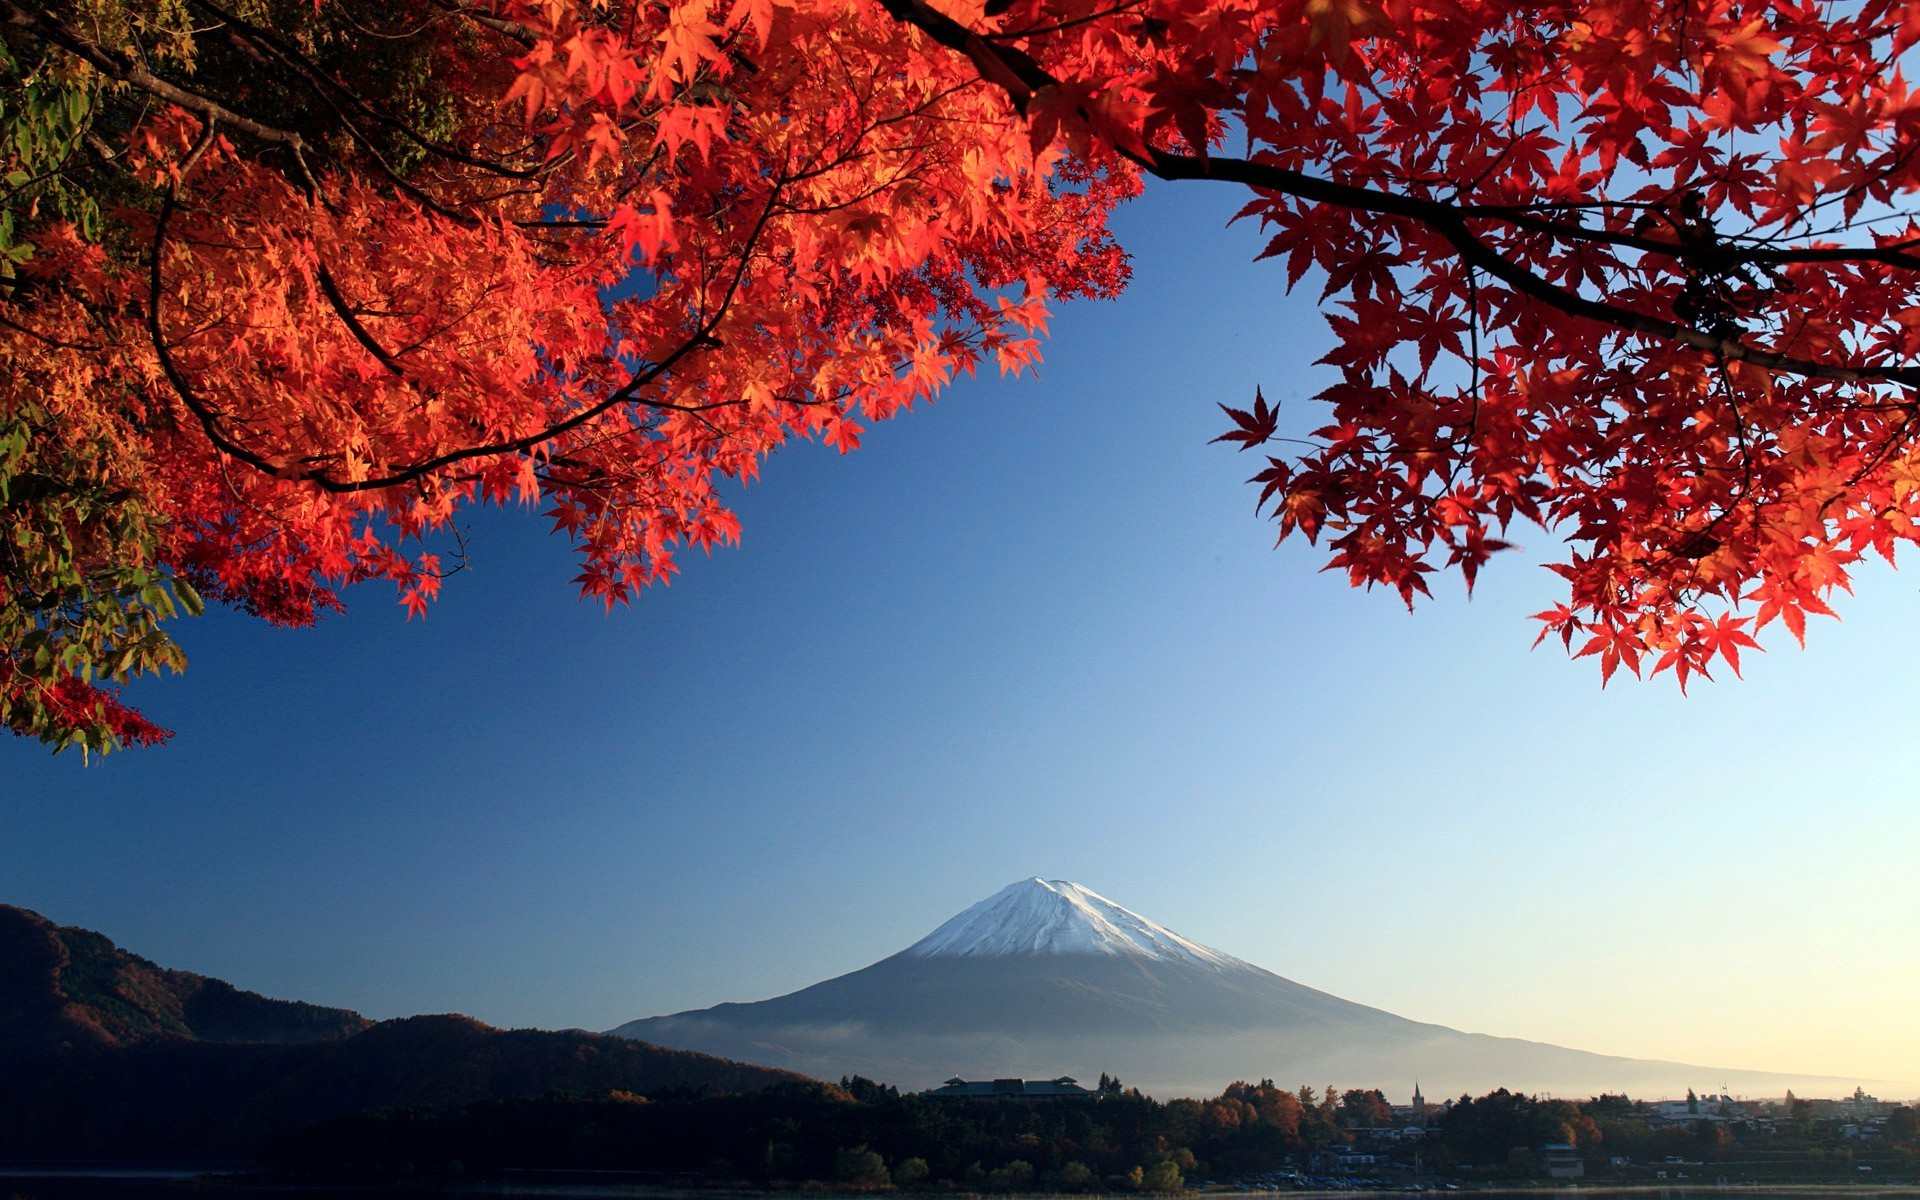 Fall Leaves Ponds Computer Wallpaper Red Maple Leaves And Mount Fuji On The Horizon Phone